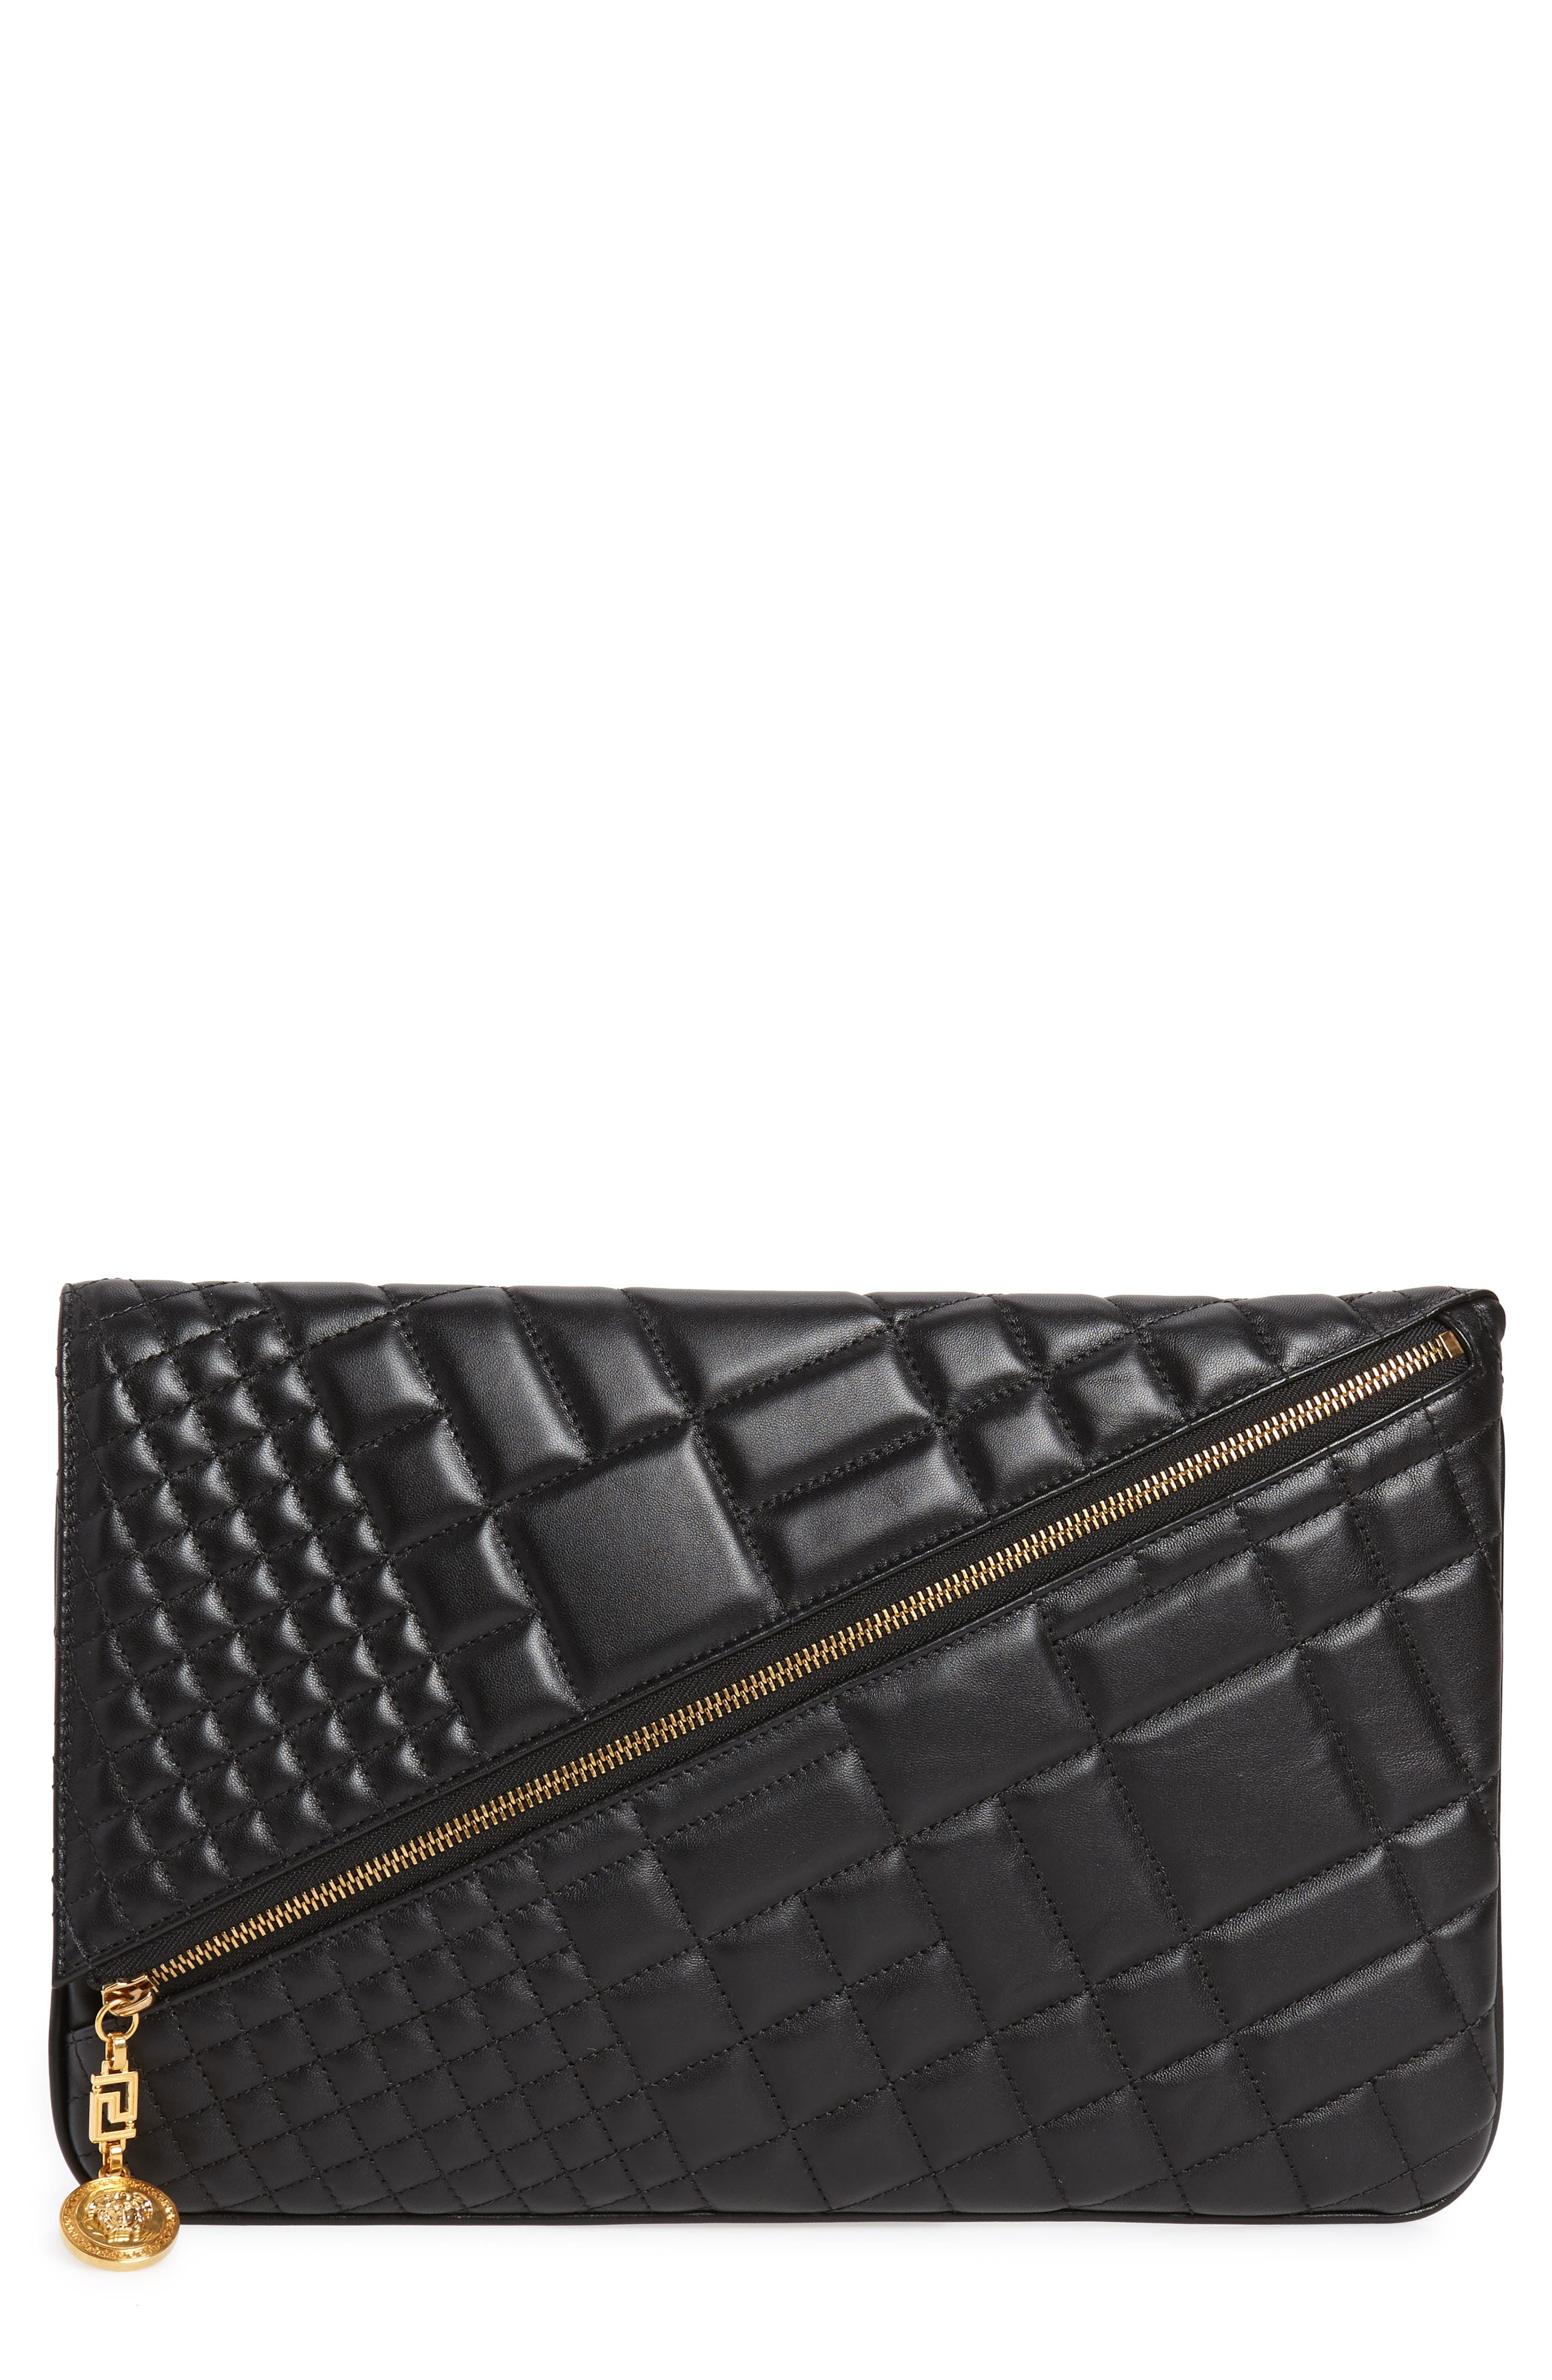 OVERSIZED QUILTED LEATHER CLUTCH - BLACK